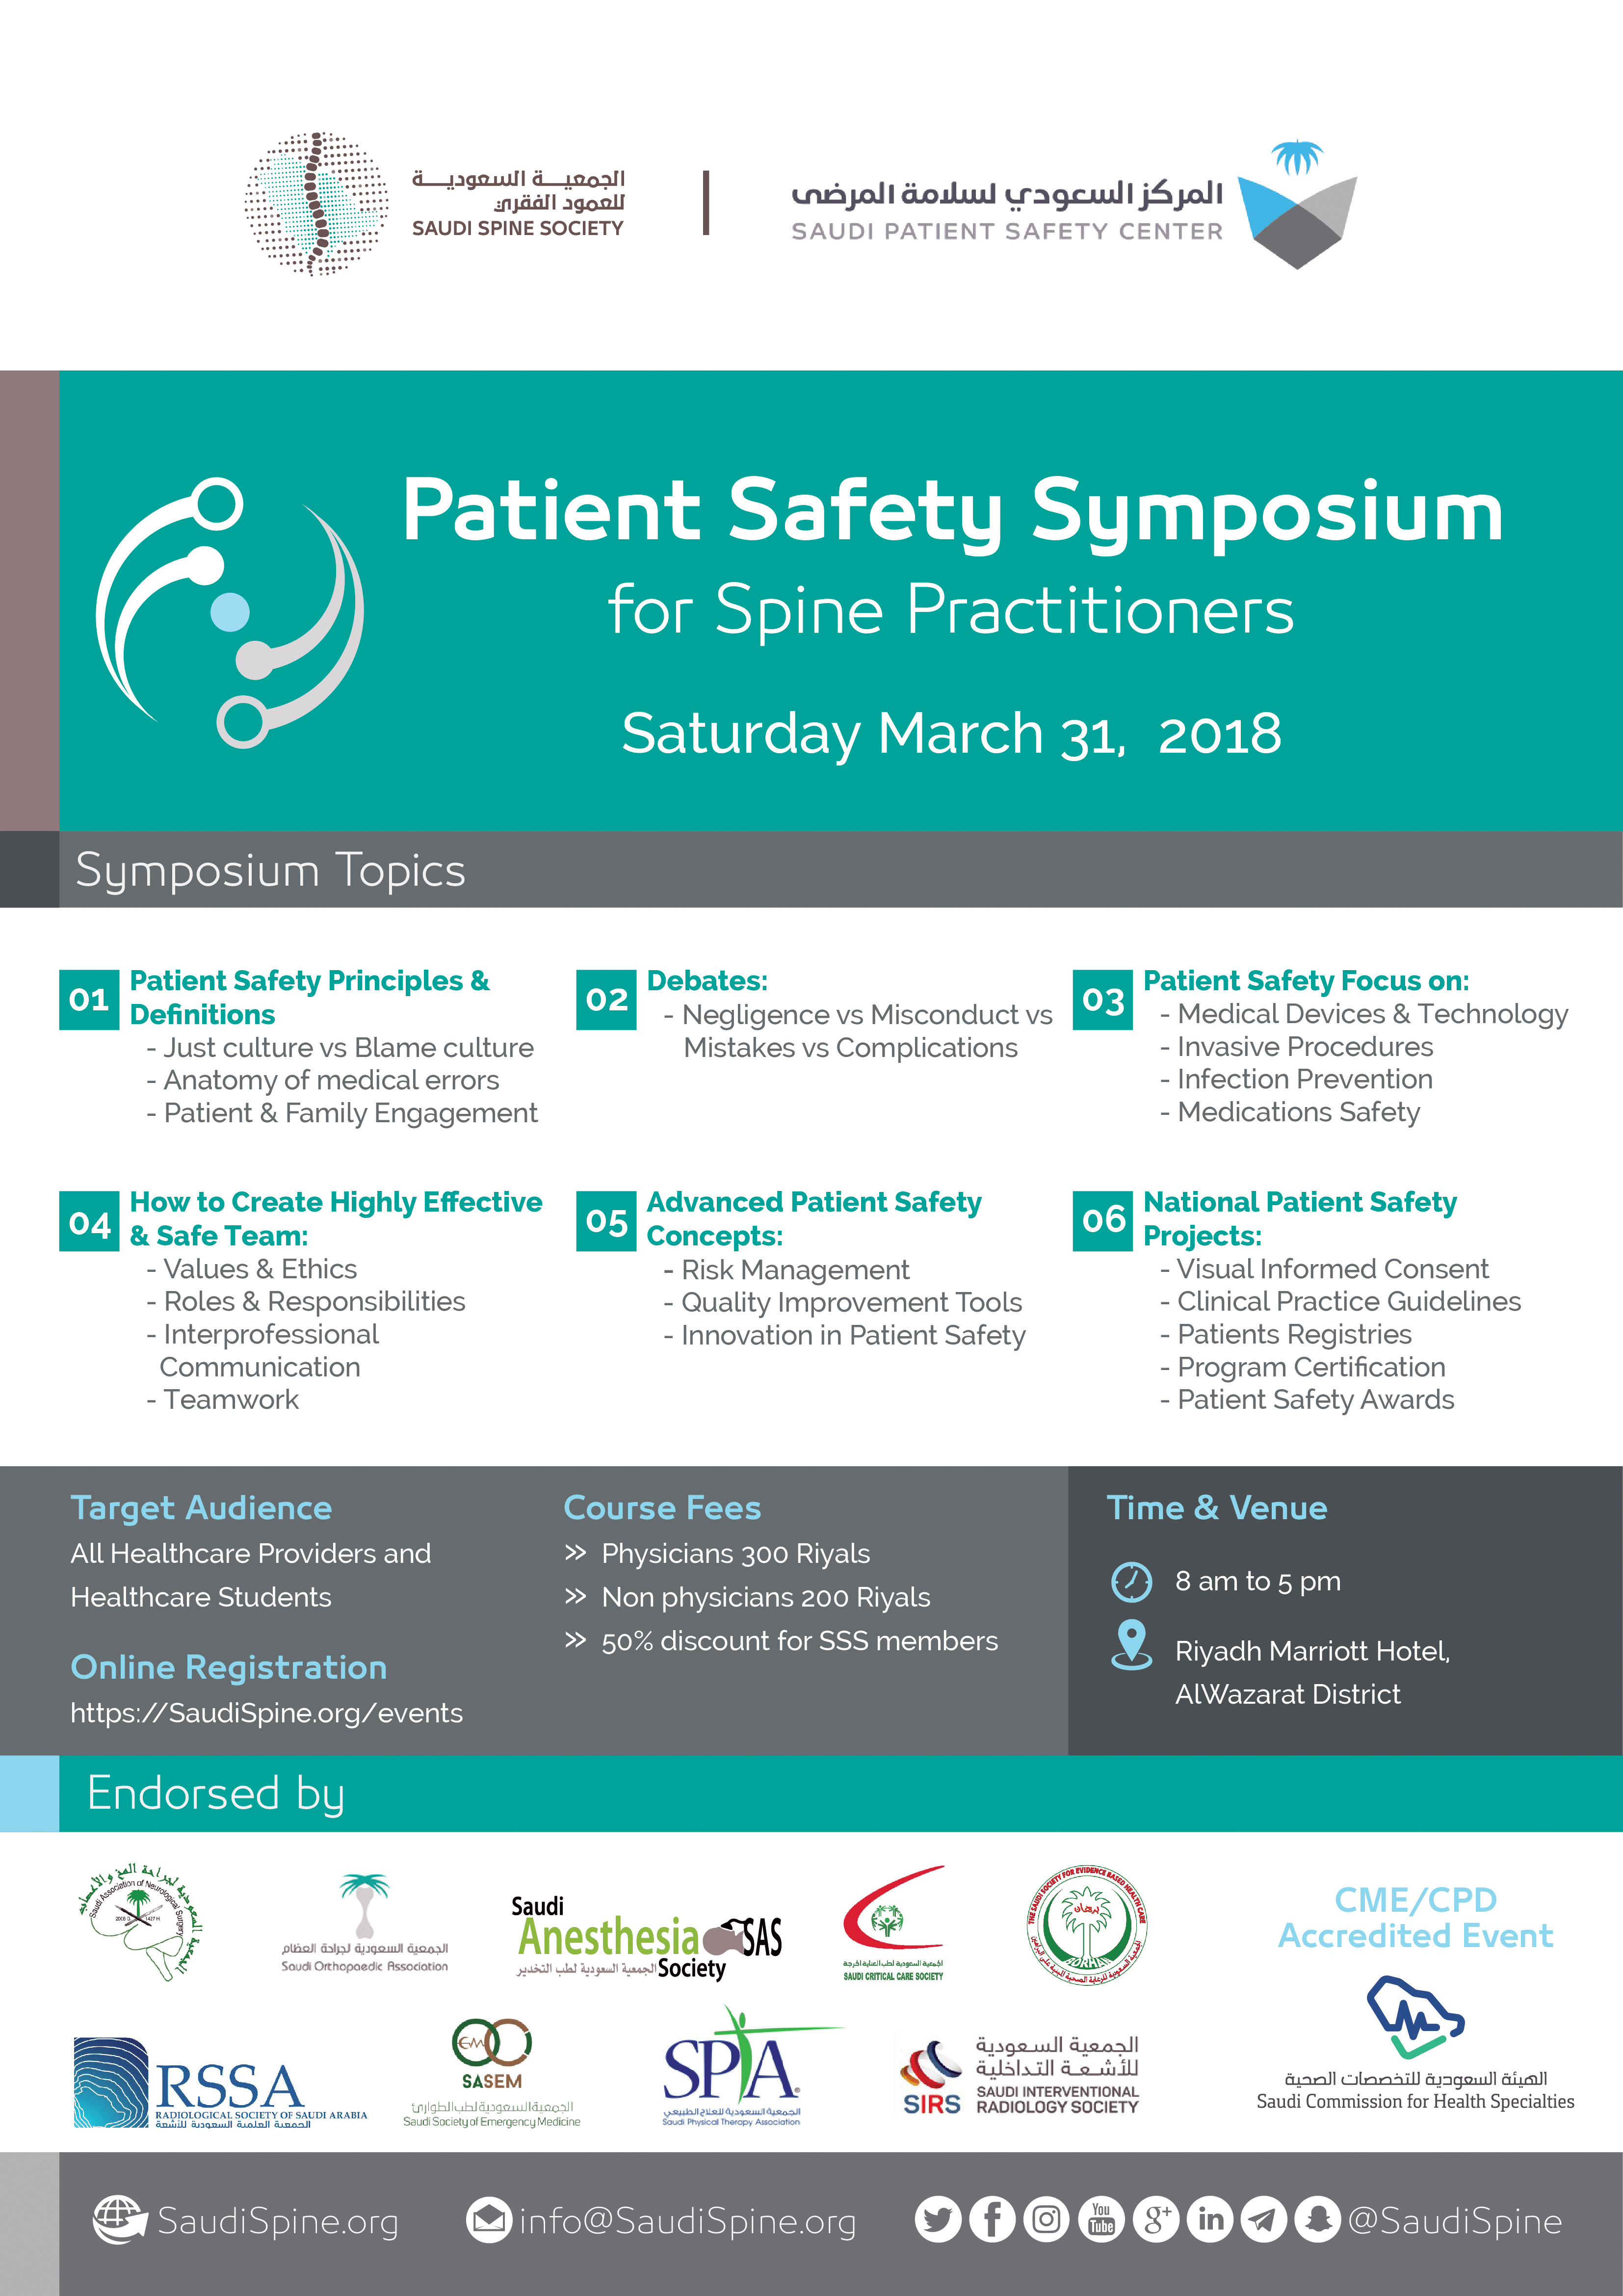 Patient Safety Symposium For Spine Practitioners Recommendations